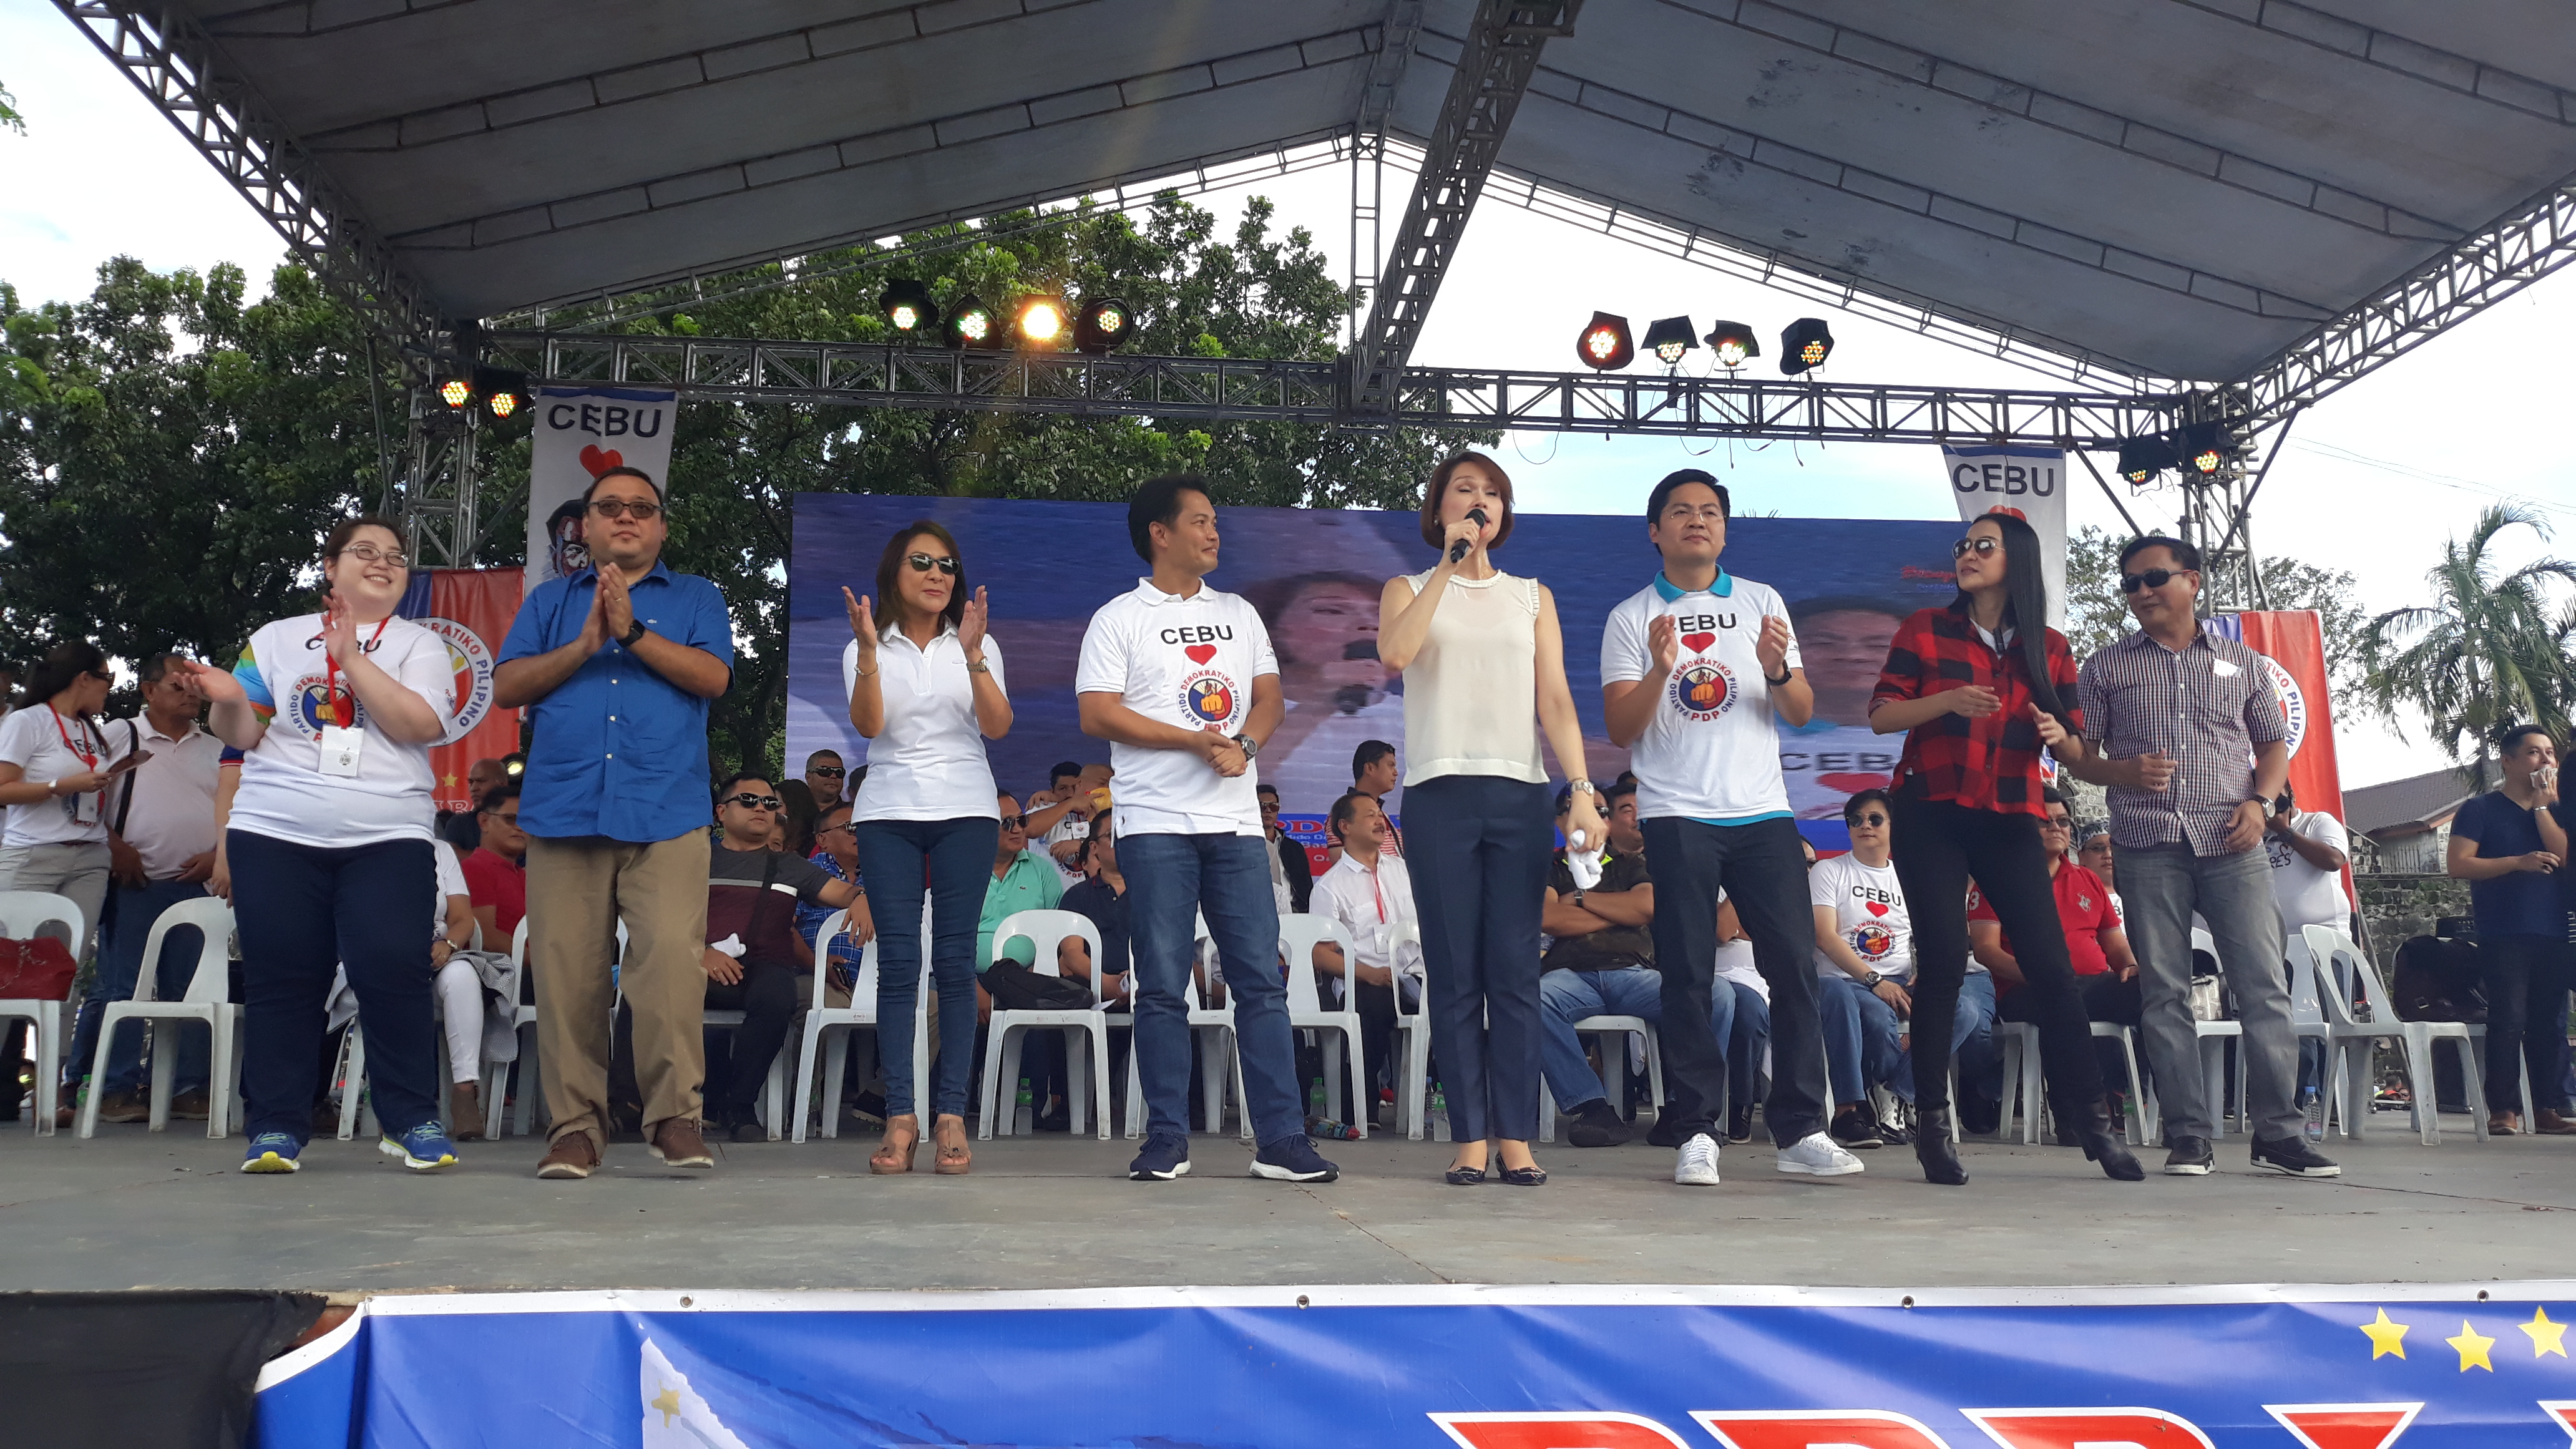 ADMINISTRATION BETS: Speaker Pantaleon Alvarez introduces PDP-Laban senatorial aspirants to the Cebuano crowd on November 17, 2017: (2nd from left) Presidential Spokesman Harry Roque, (4th from left) Negros Occidental Representative Albee Benitez, Bataan Representative Geraldine Roman, Davao City Representative Karlo Nograles, Assistant Secretary Mocha Uson of the Presidential Communications Operations Office, and defeated 2016 senatorial bet Francis Tolentino. Cebu congresswomen Aileen Radaza and Gwendolyn Garcia joined them onstage at Plaza Independencia. Photo by Mars Mosqueda Jr/Rappler